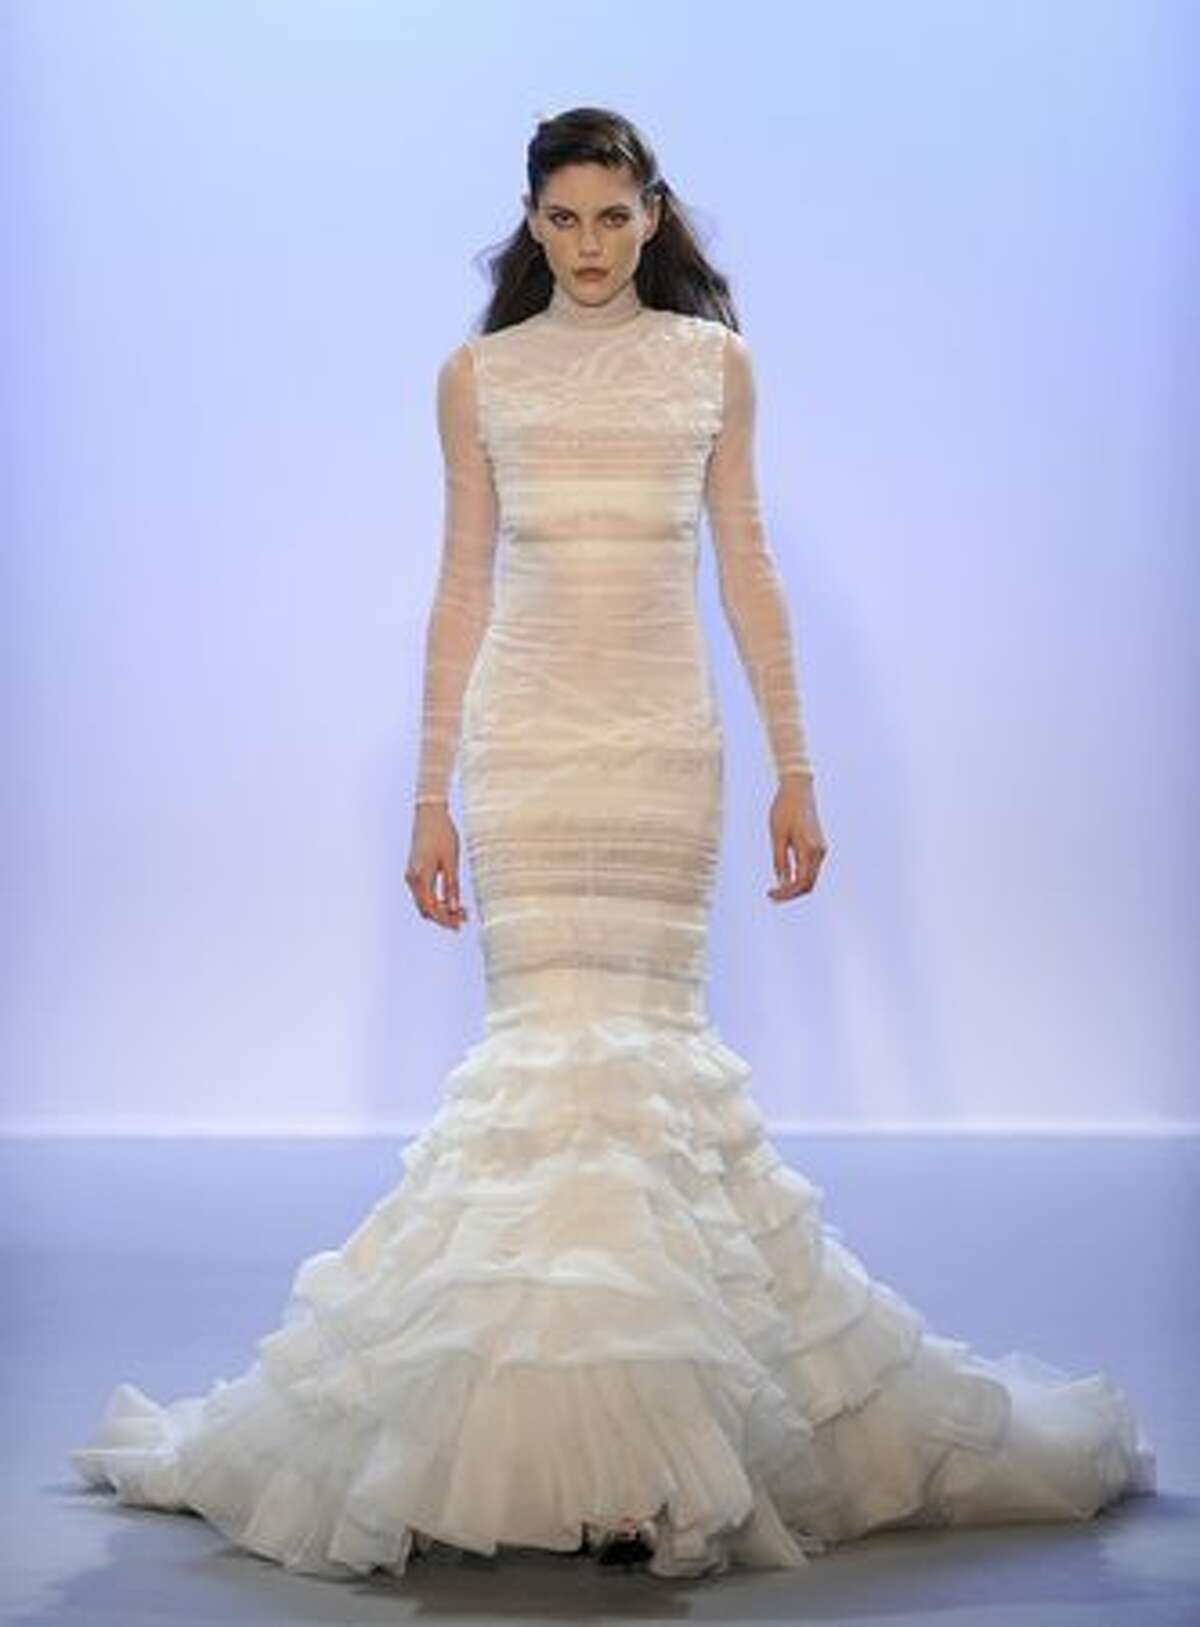 A model presents a creation by Christophe Josse.